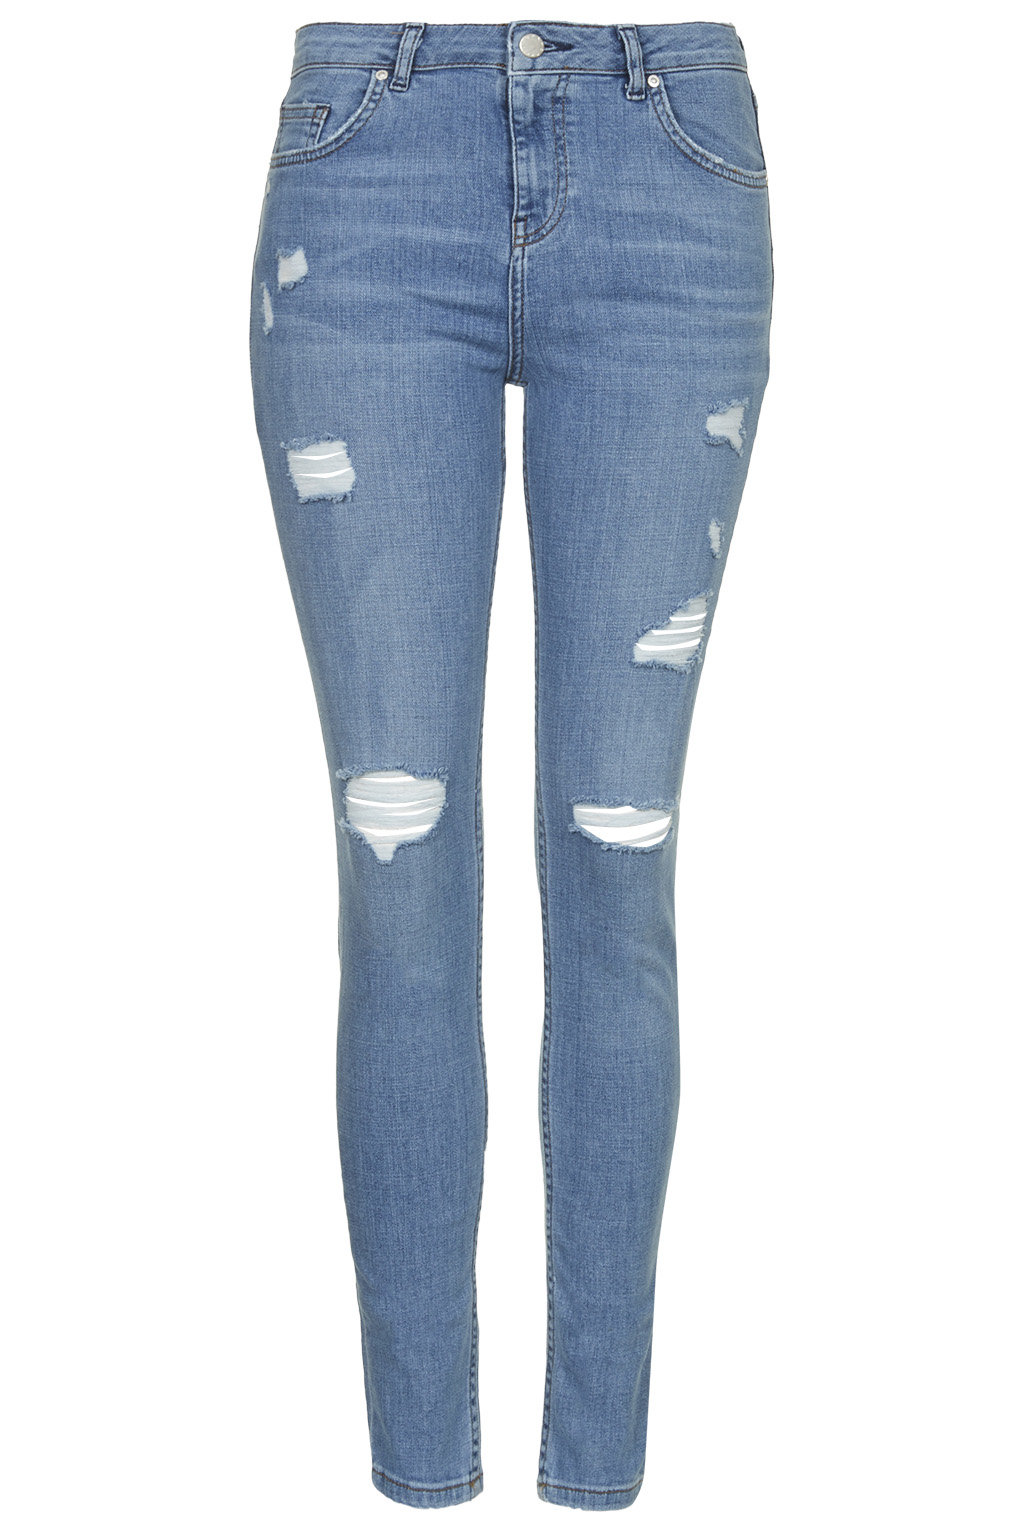 Moto bleach authentic ripped jeans